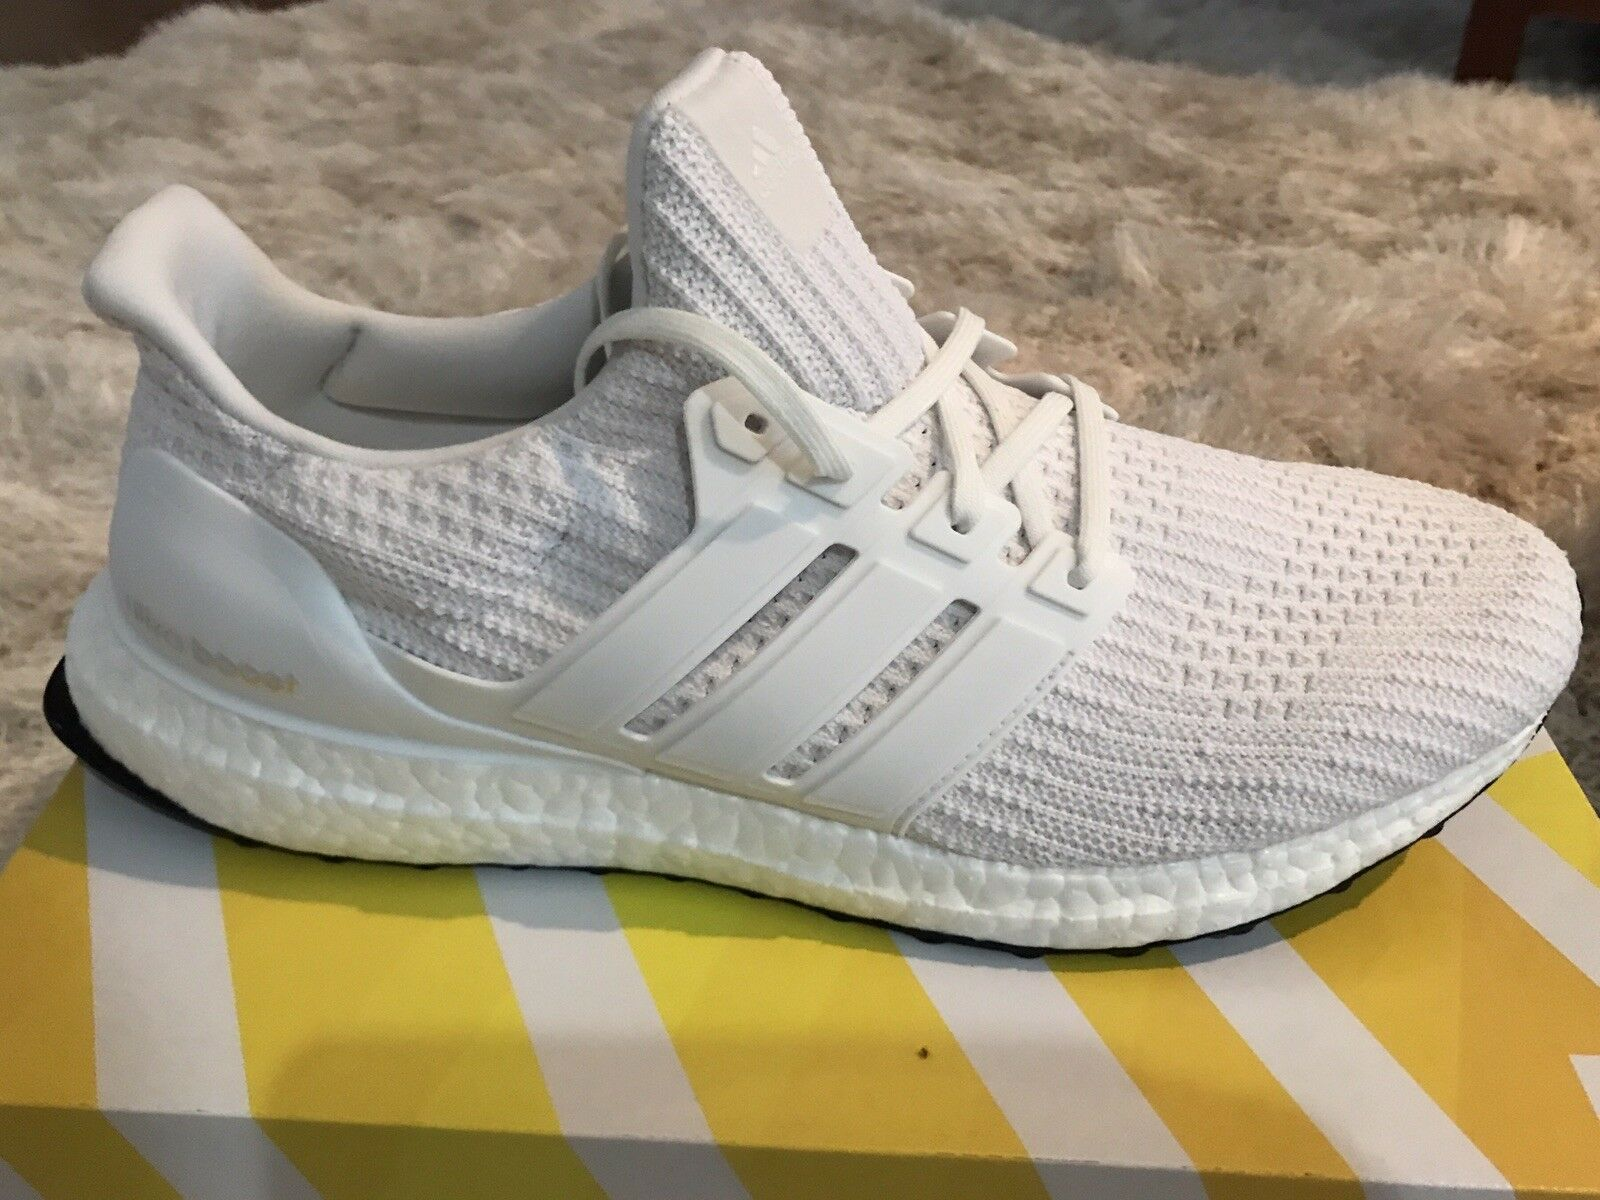 Adidas Ultra Boost Men's Size 11.0